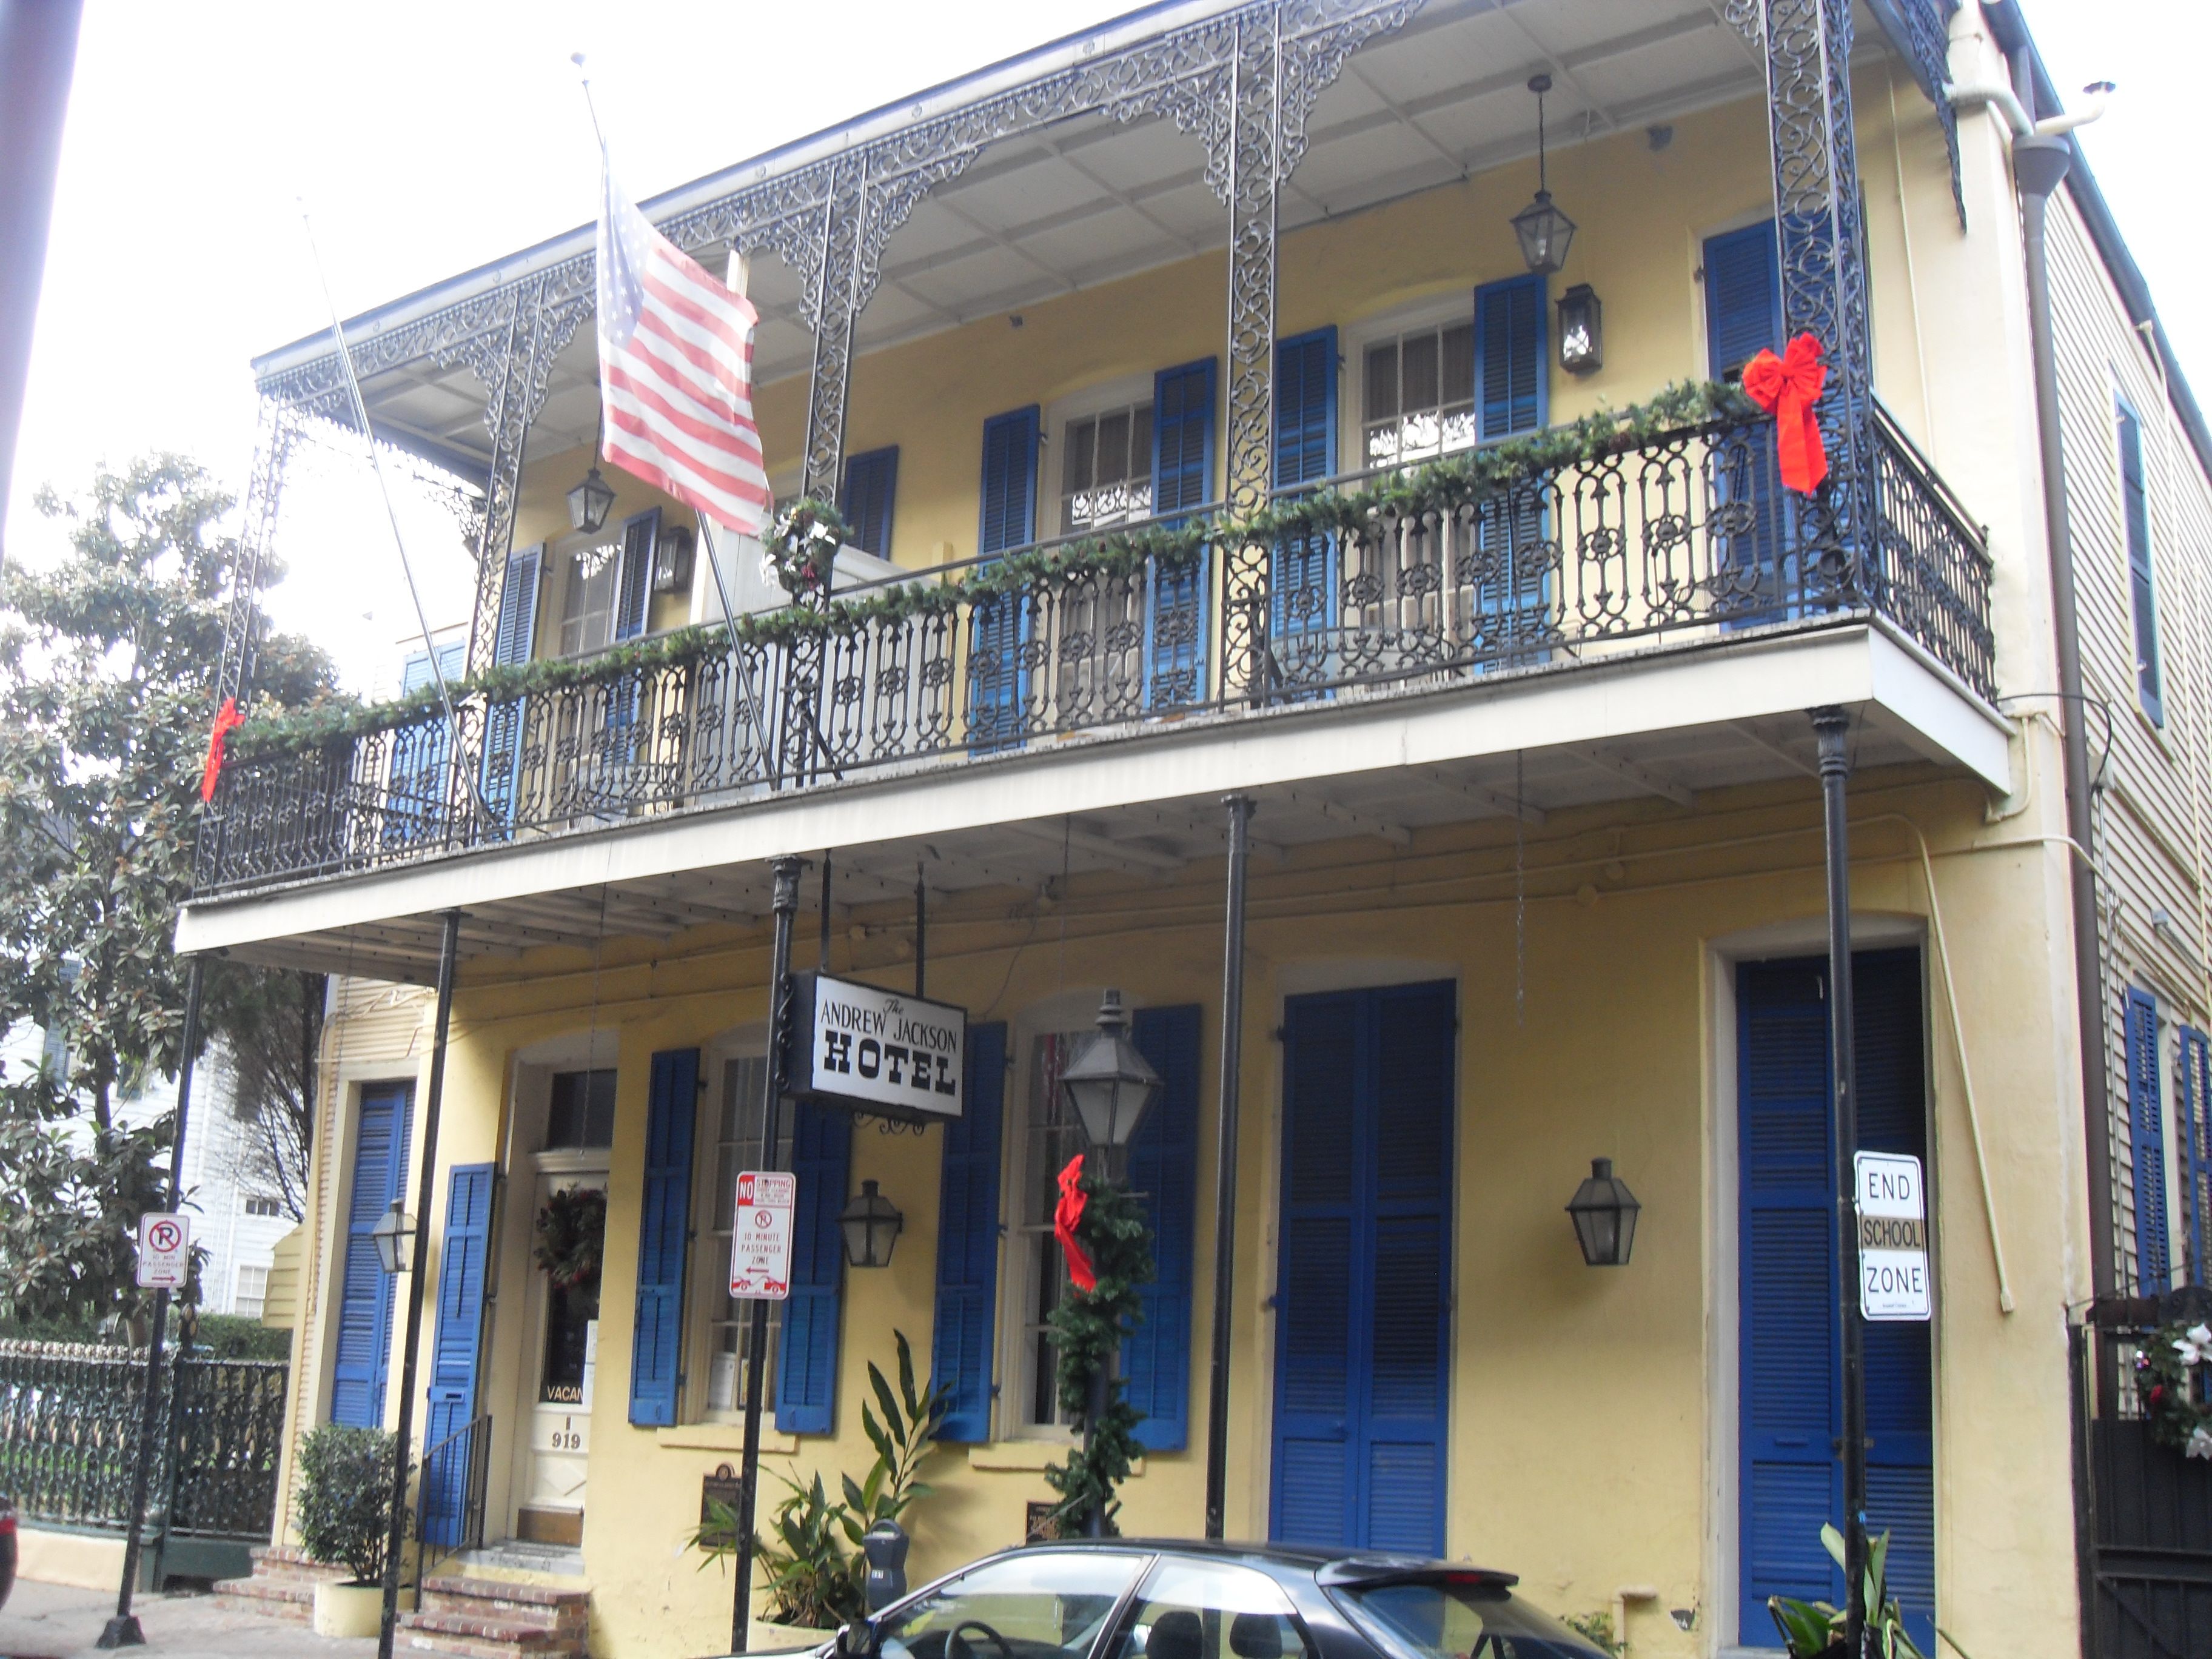 Our romantic hotel in the middle of the French Quarter